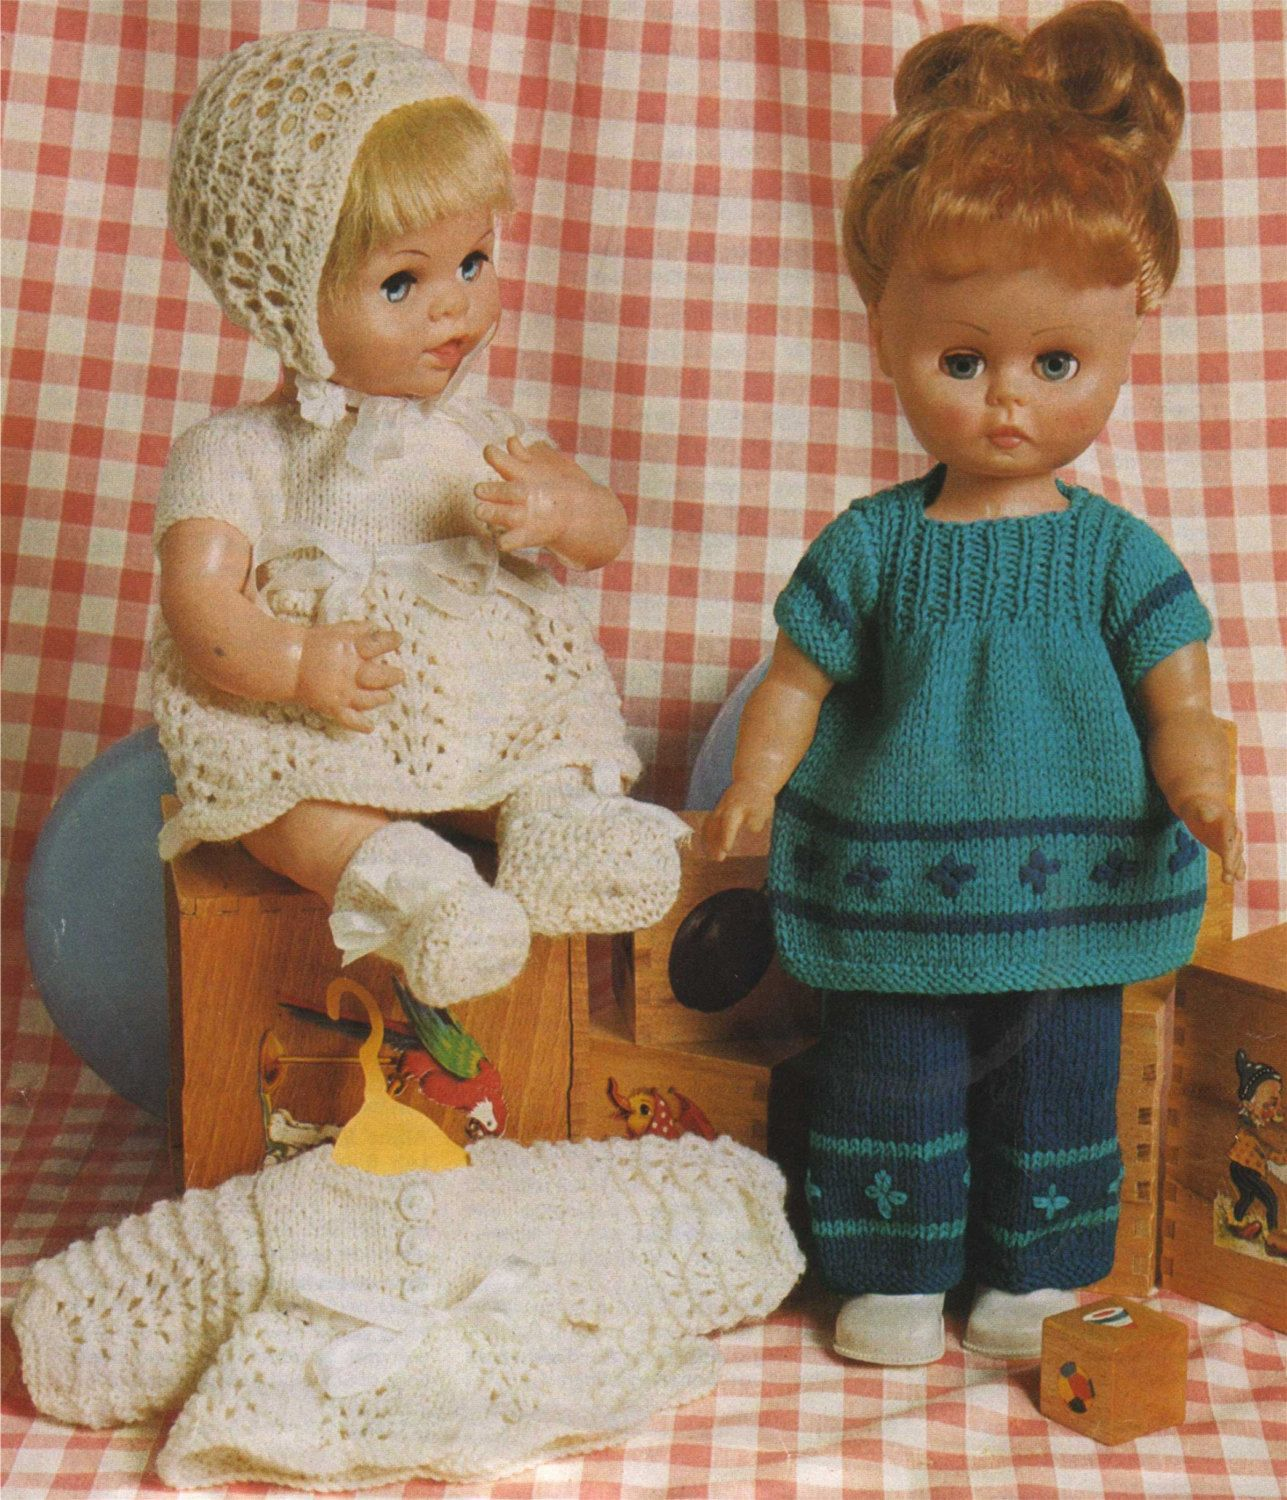 Dolls Clothes Knitting Pattern Pdf For 14 Inch Doll And 12 Etsy Baby Doll Clothes Patterns Knitting Patterns Knitted Baby Outfits